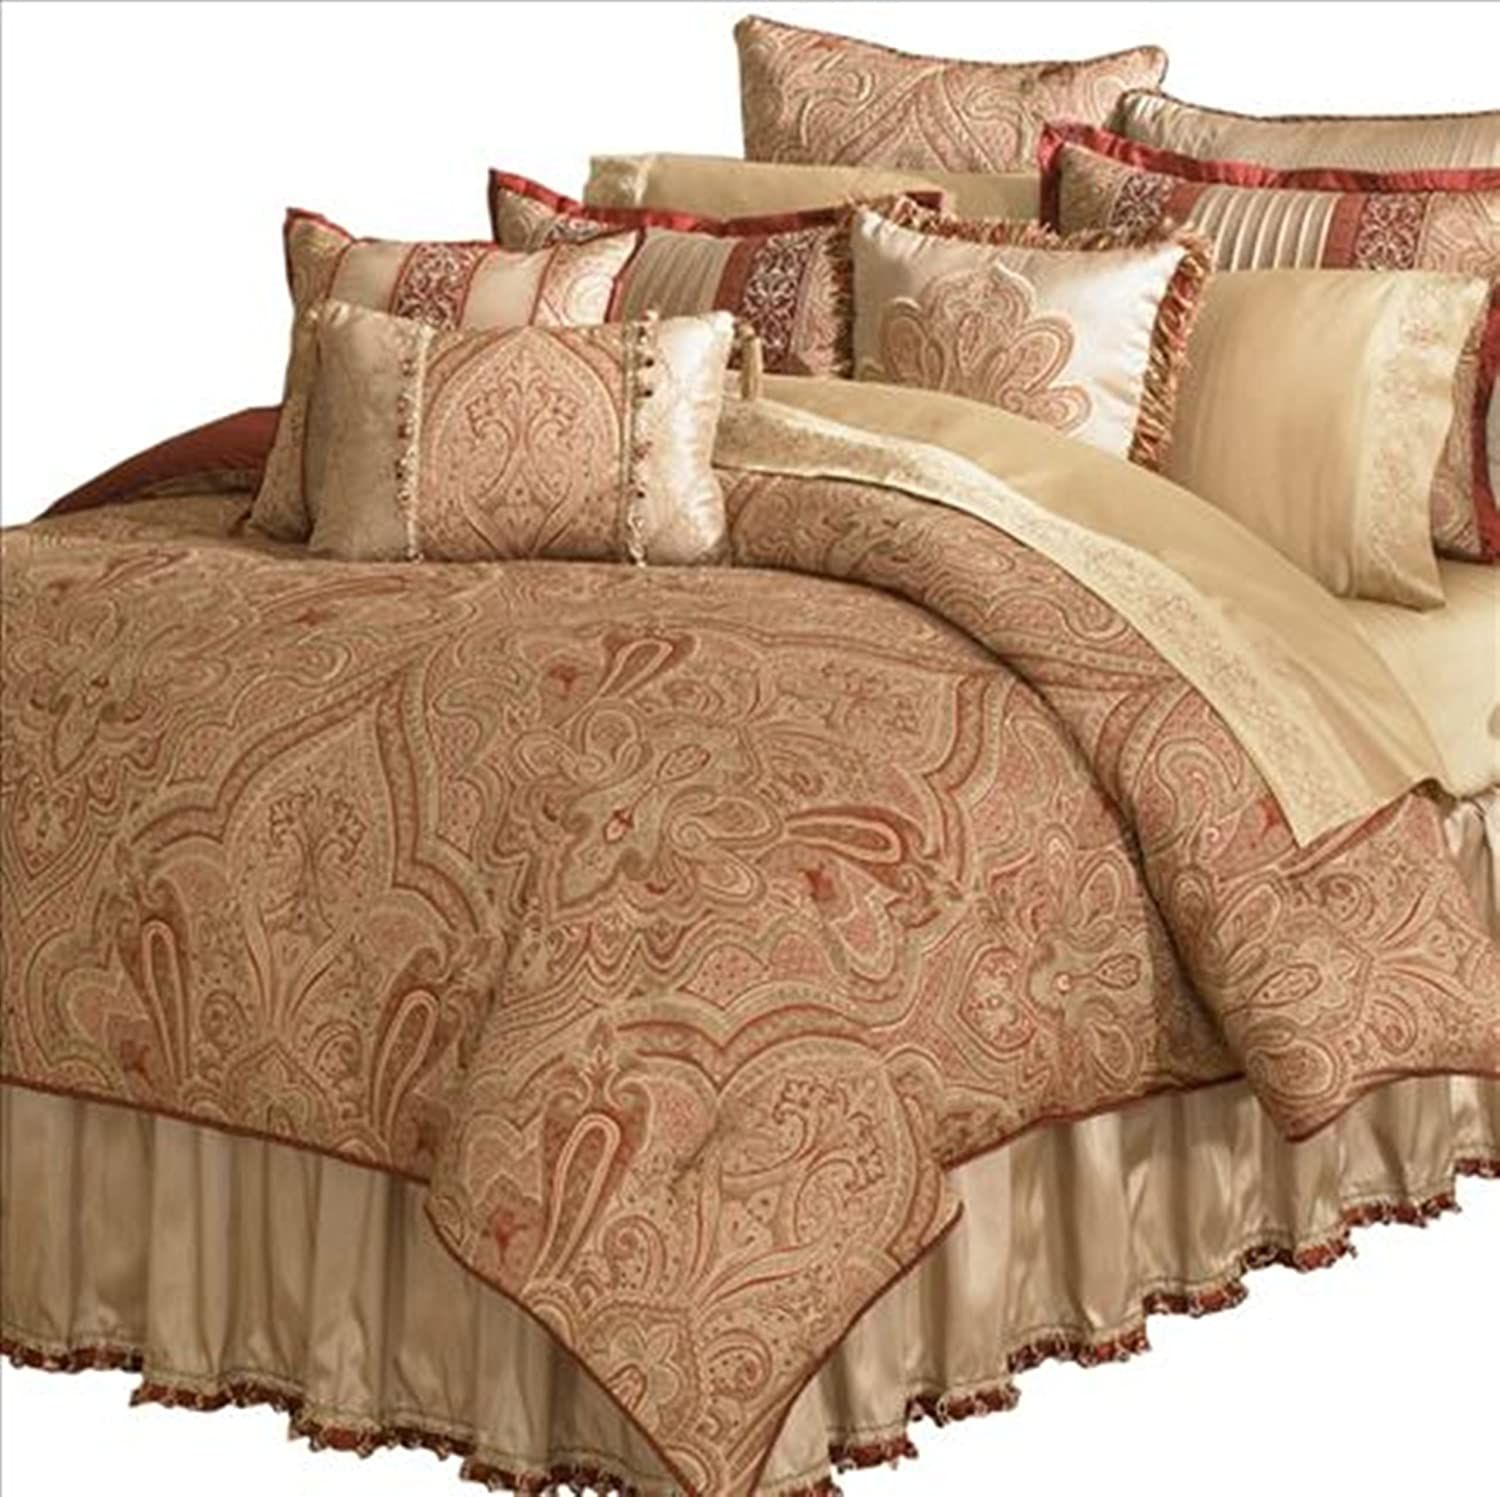 Queen comforter sets amazon amazoncom multiple colors 8pc for Kitchen queen set